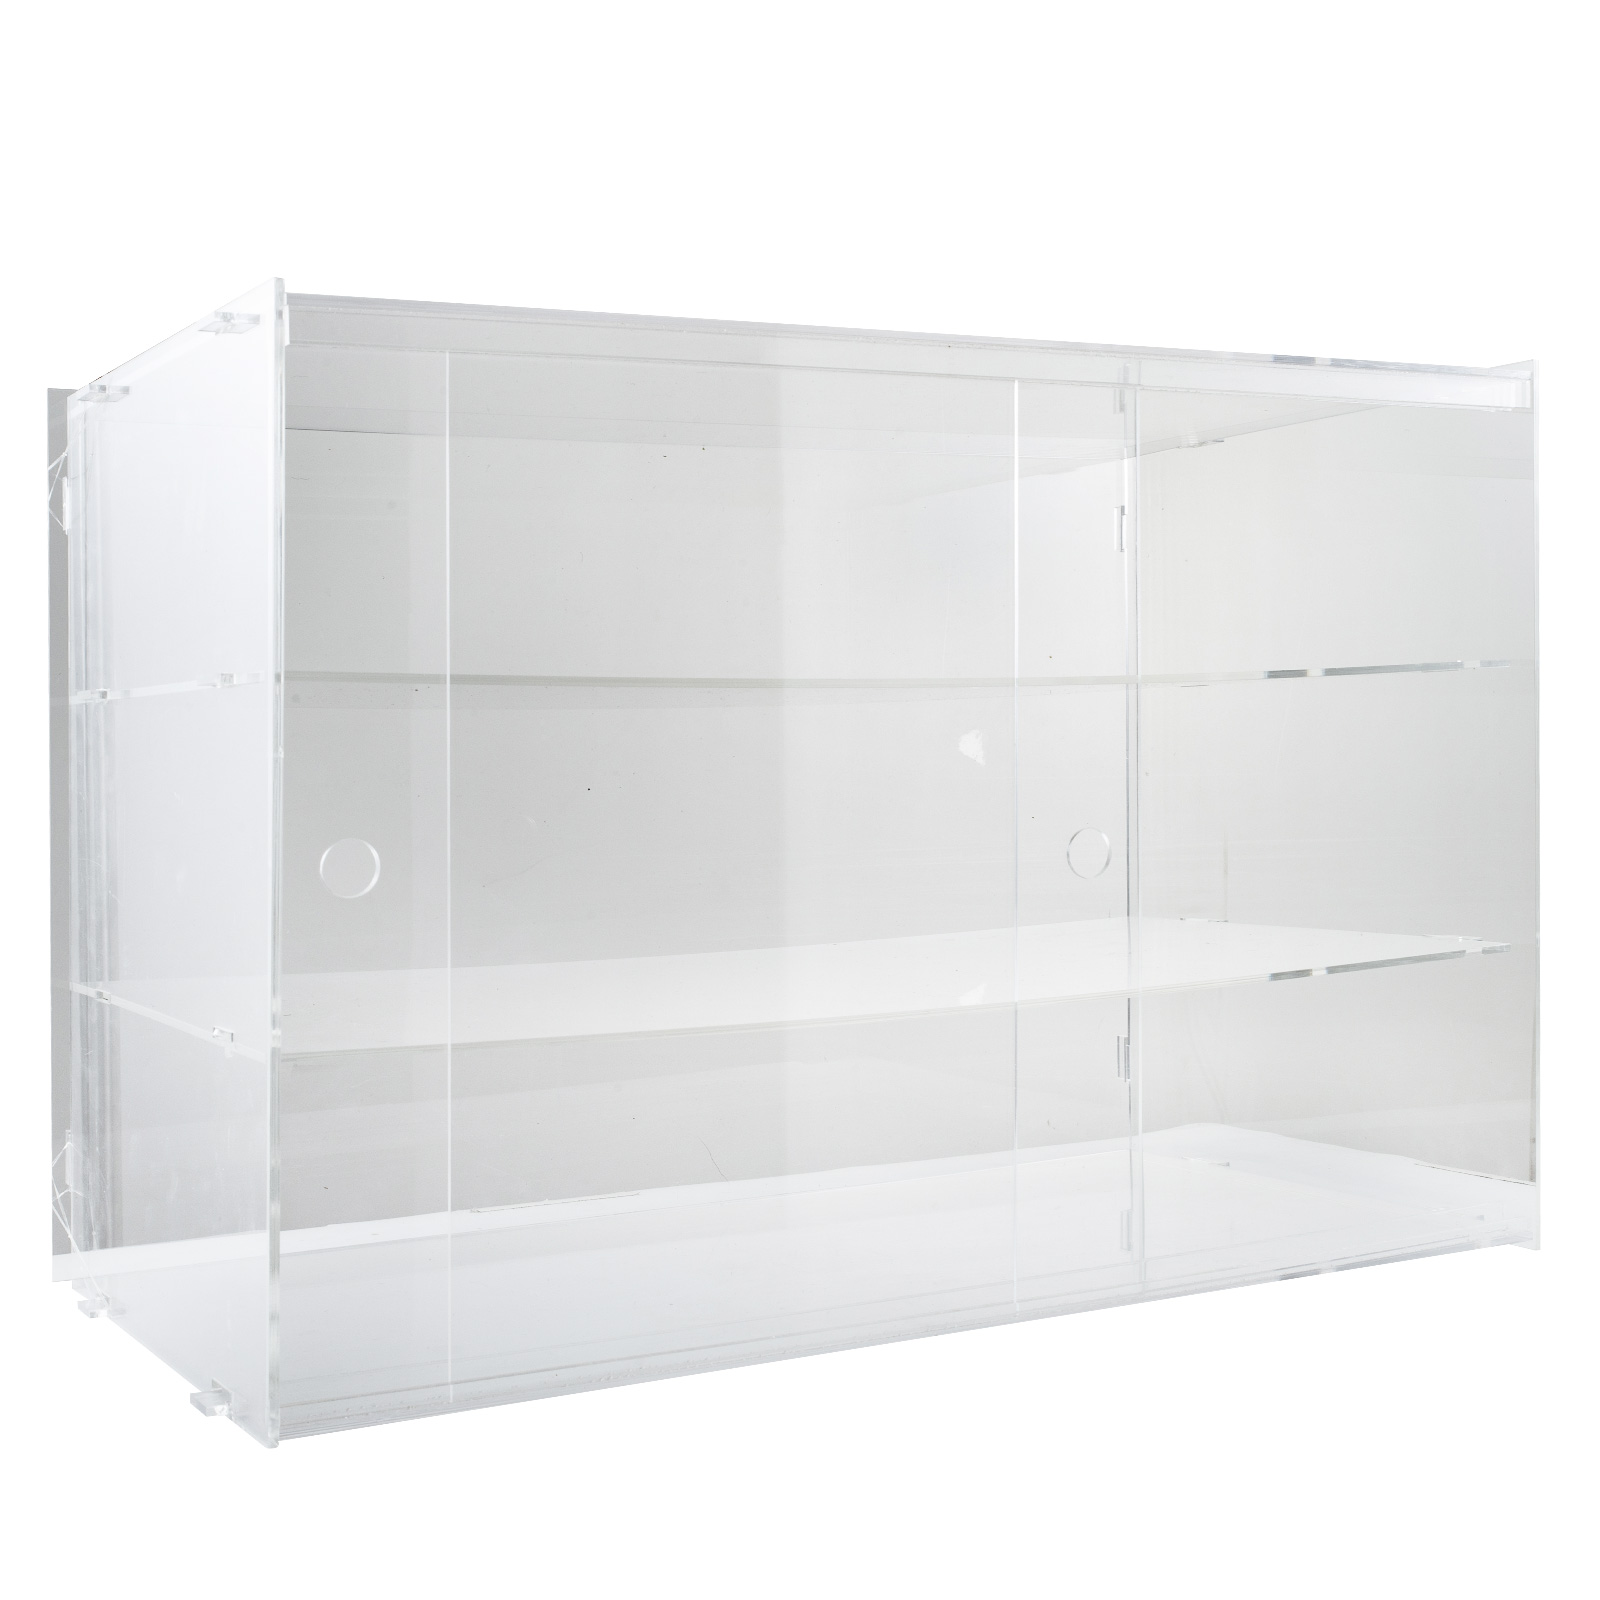 thumbnail 177 - 2-3-4-Shelves-Acrylic-Display-Cabinet-Glued-Unassembled-Bakery-Clear-Pastry